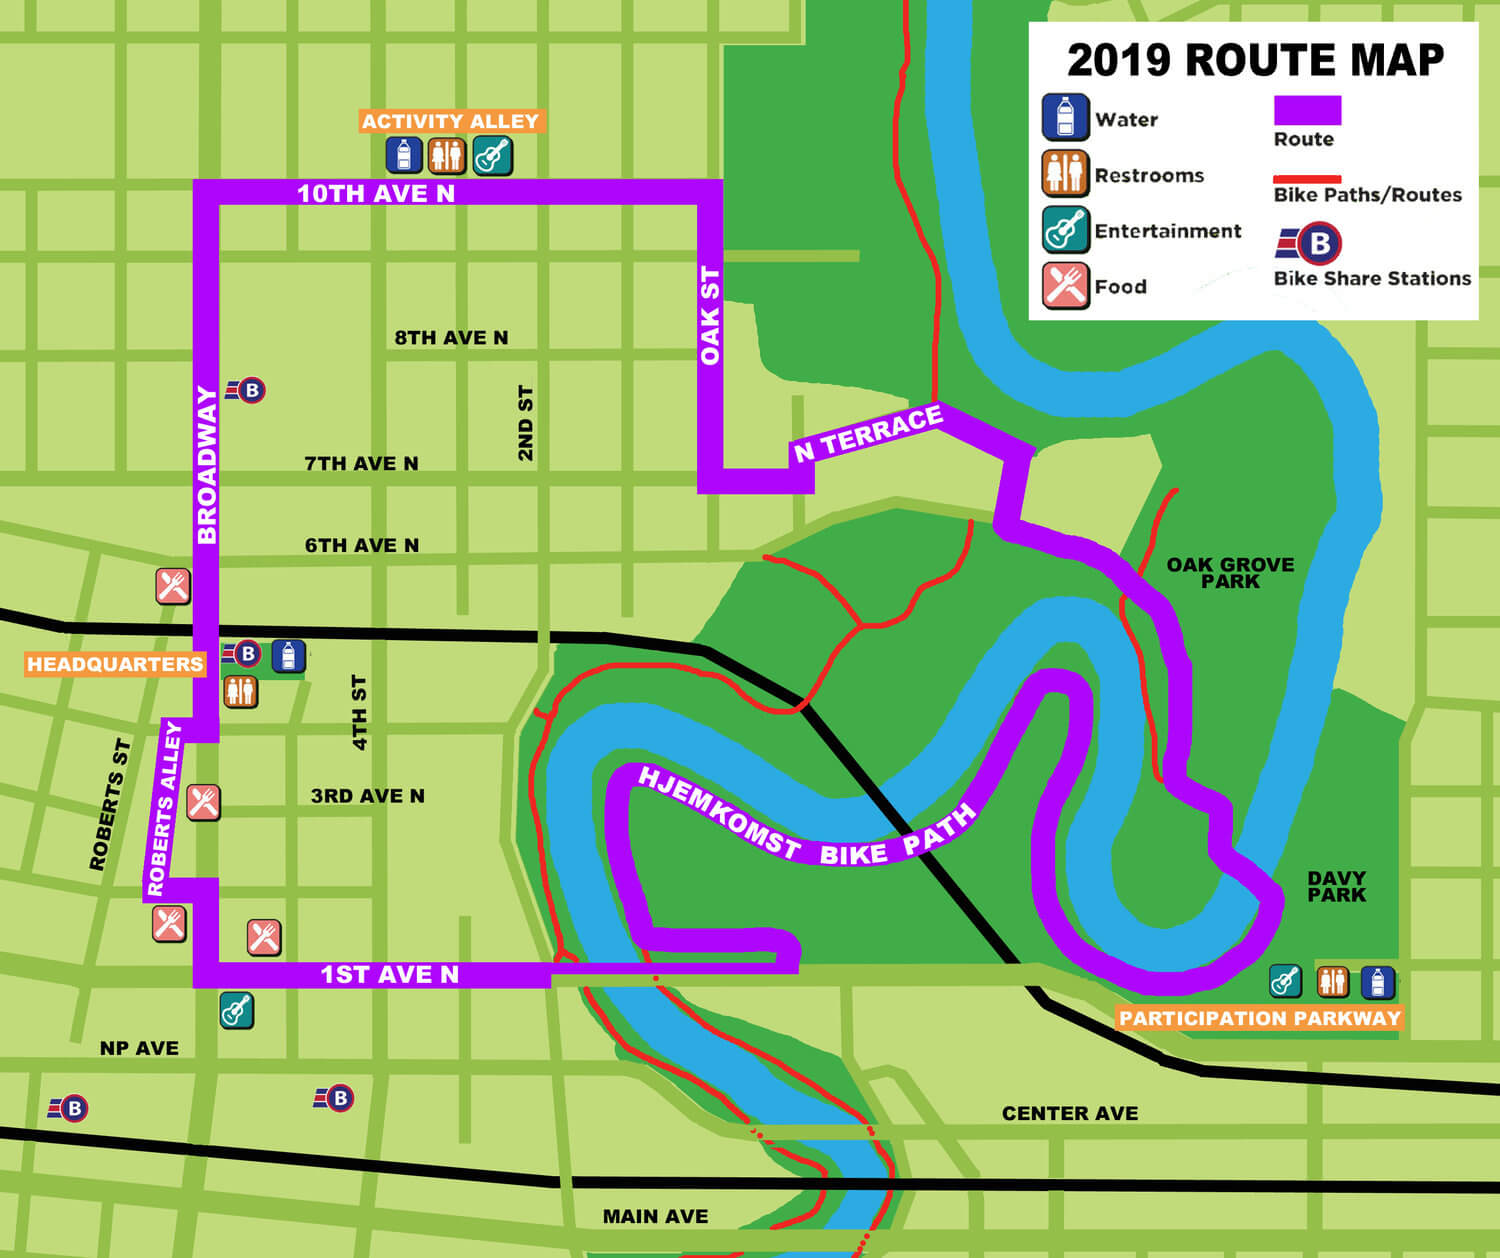 Streets Alive! map for 2019